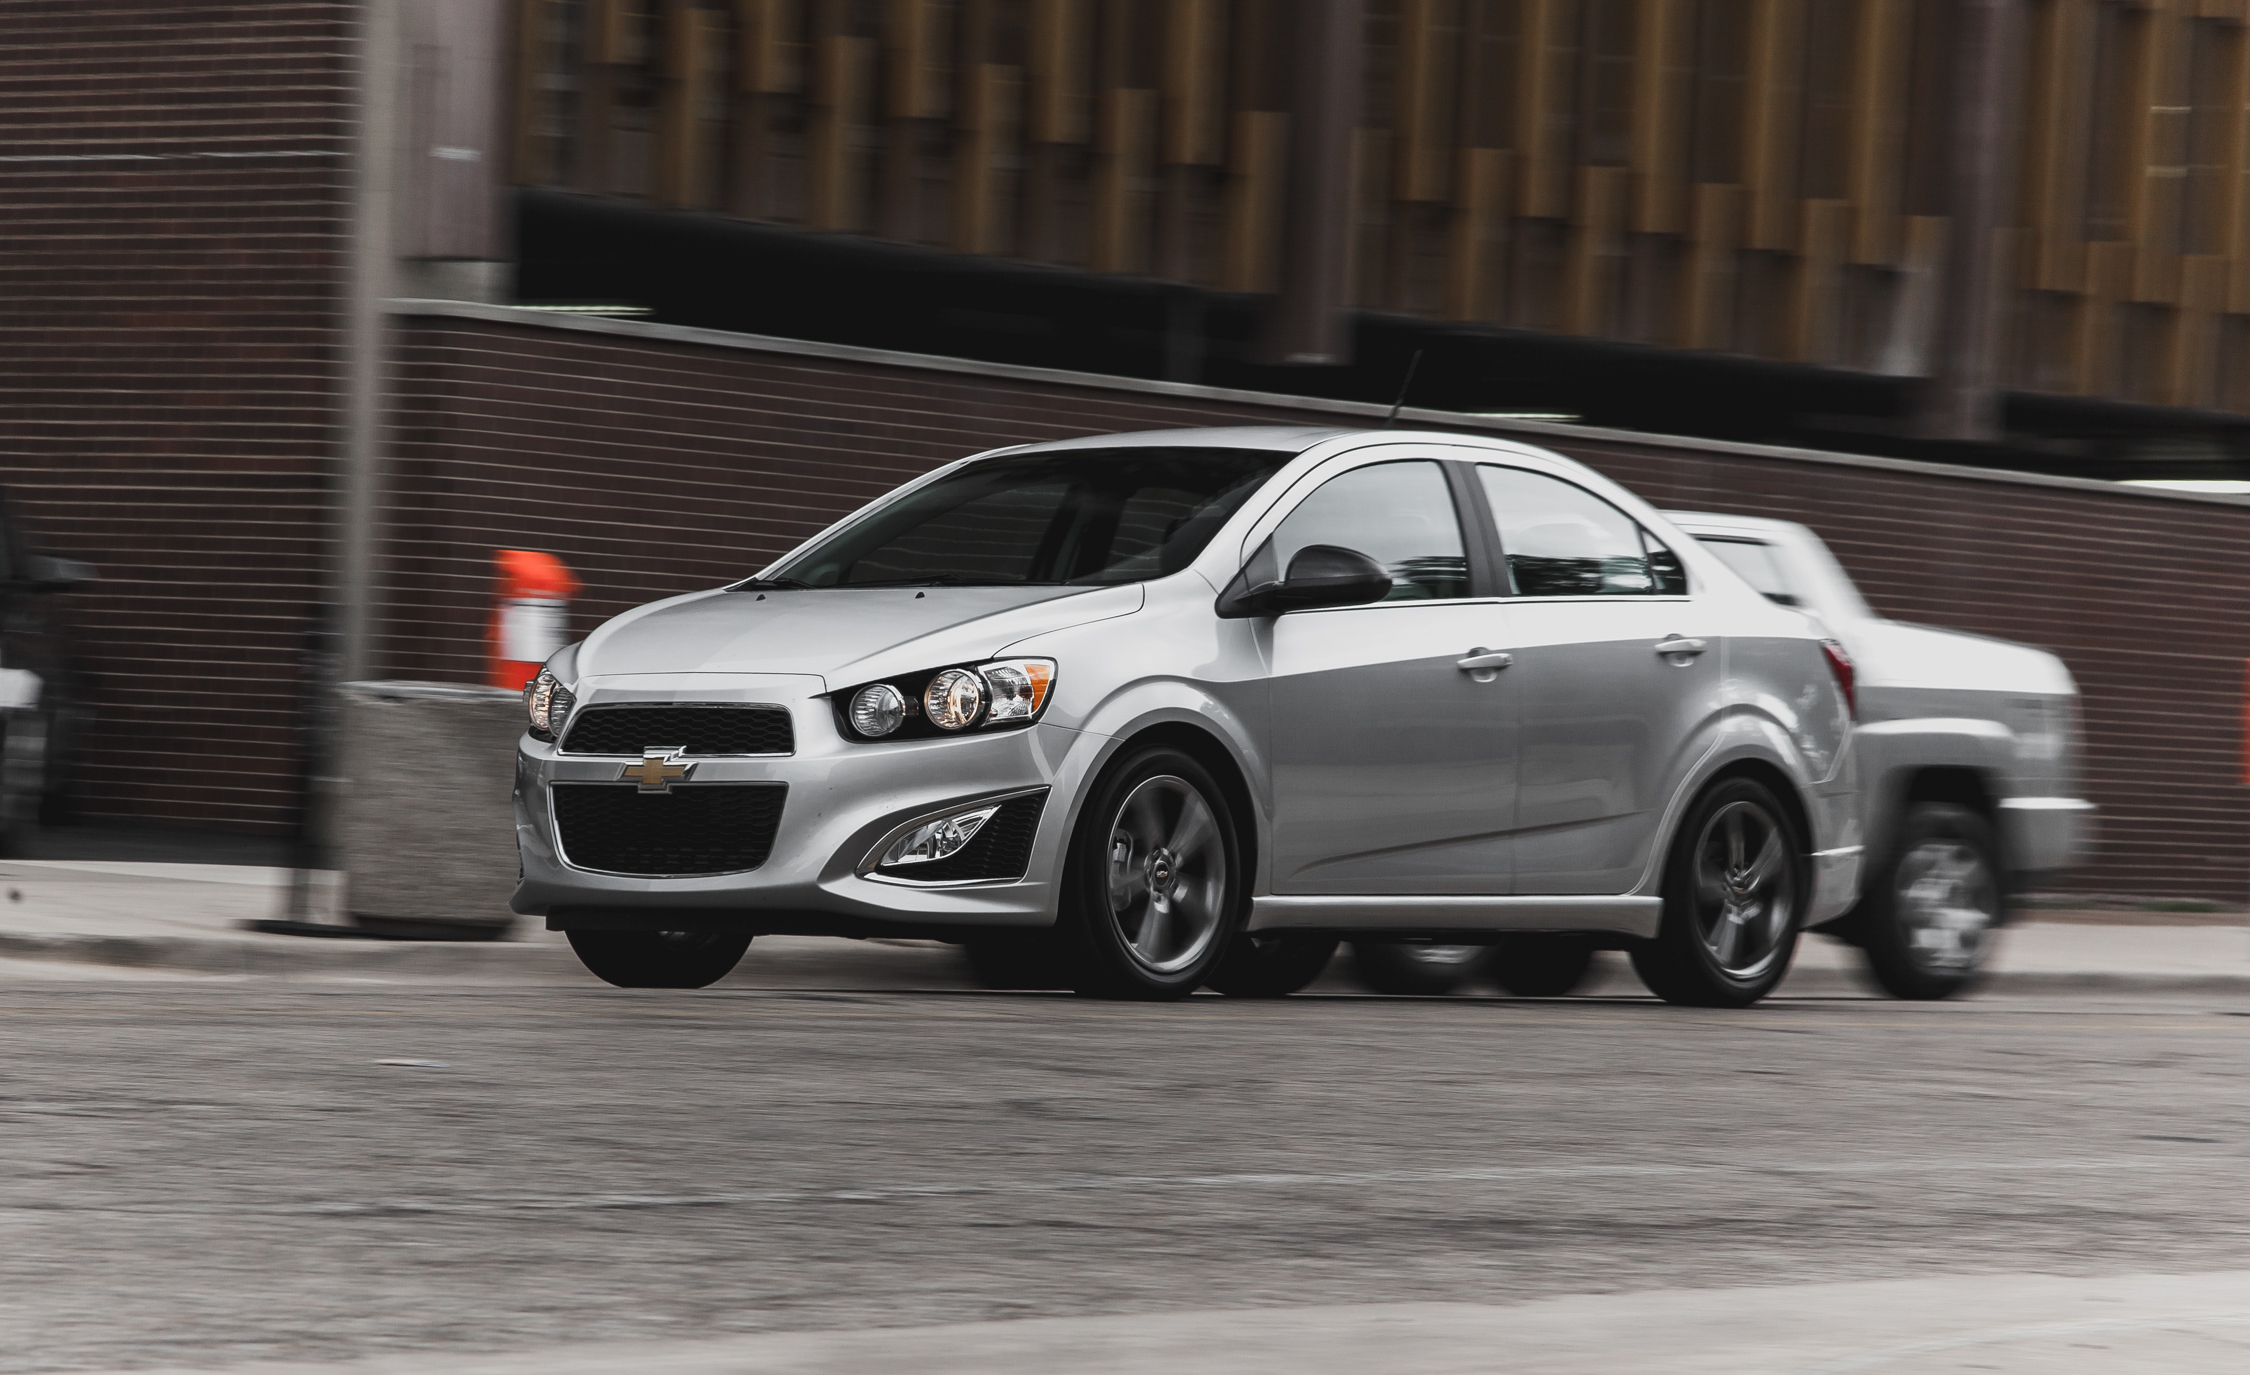 2013 Chevrolet Sonic RS Review Pictures Gallery (27 Images)